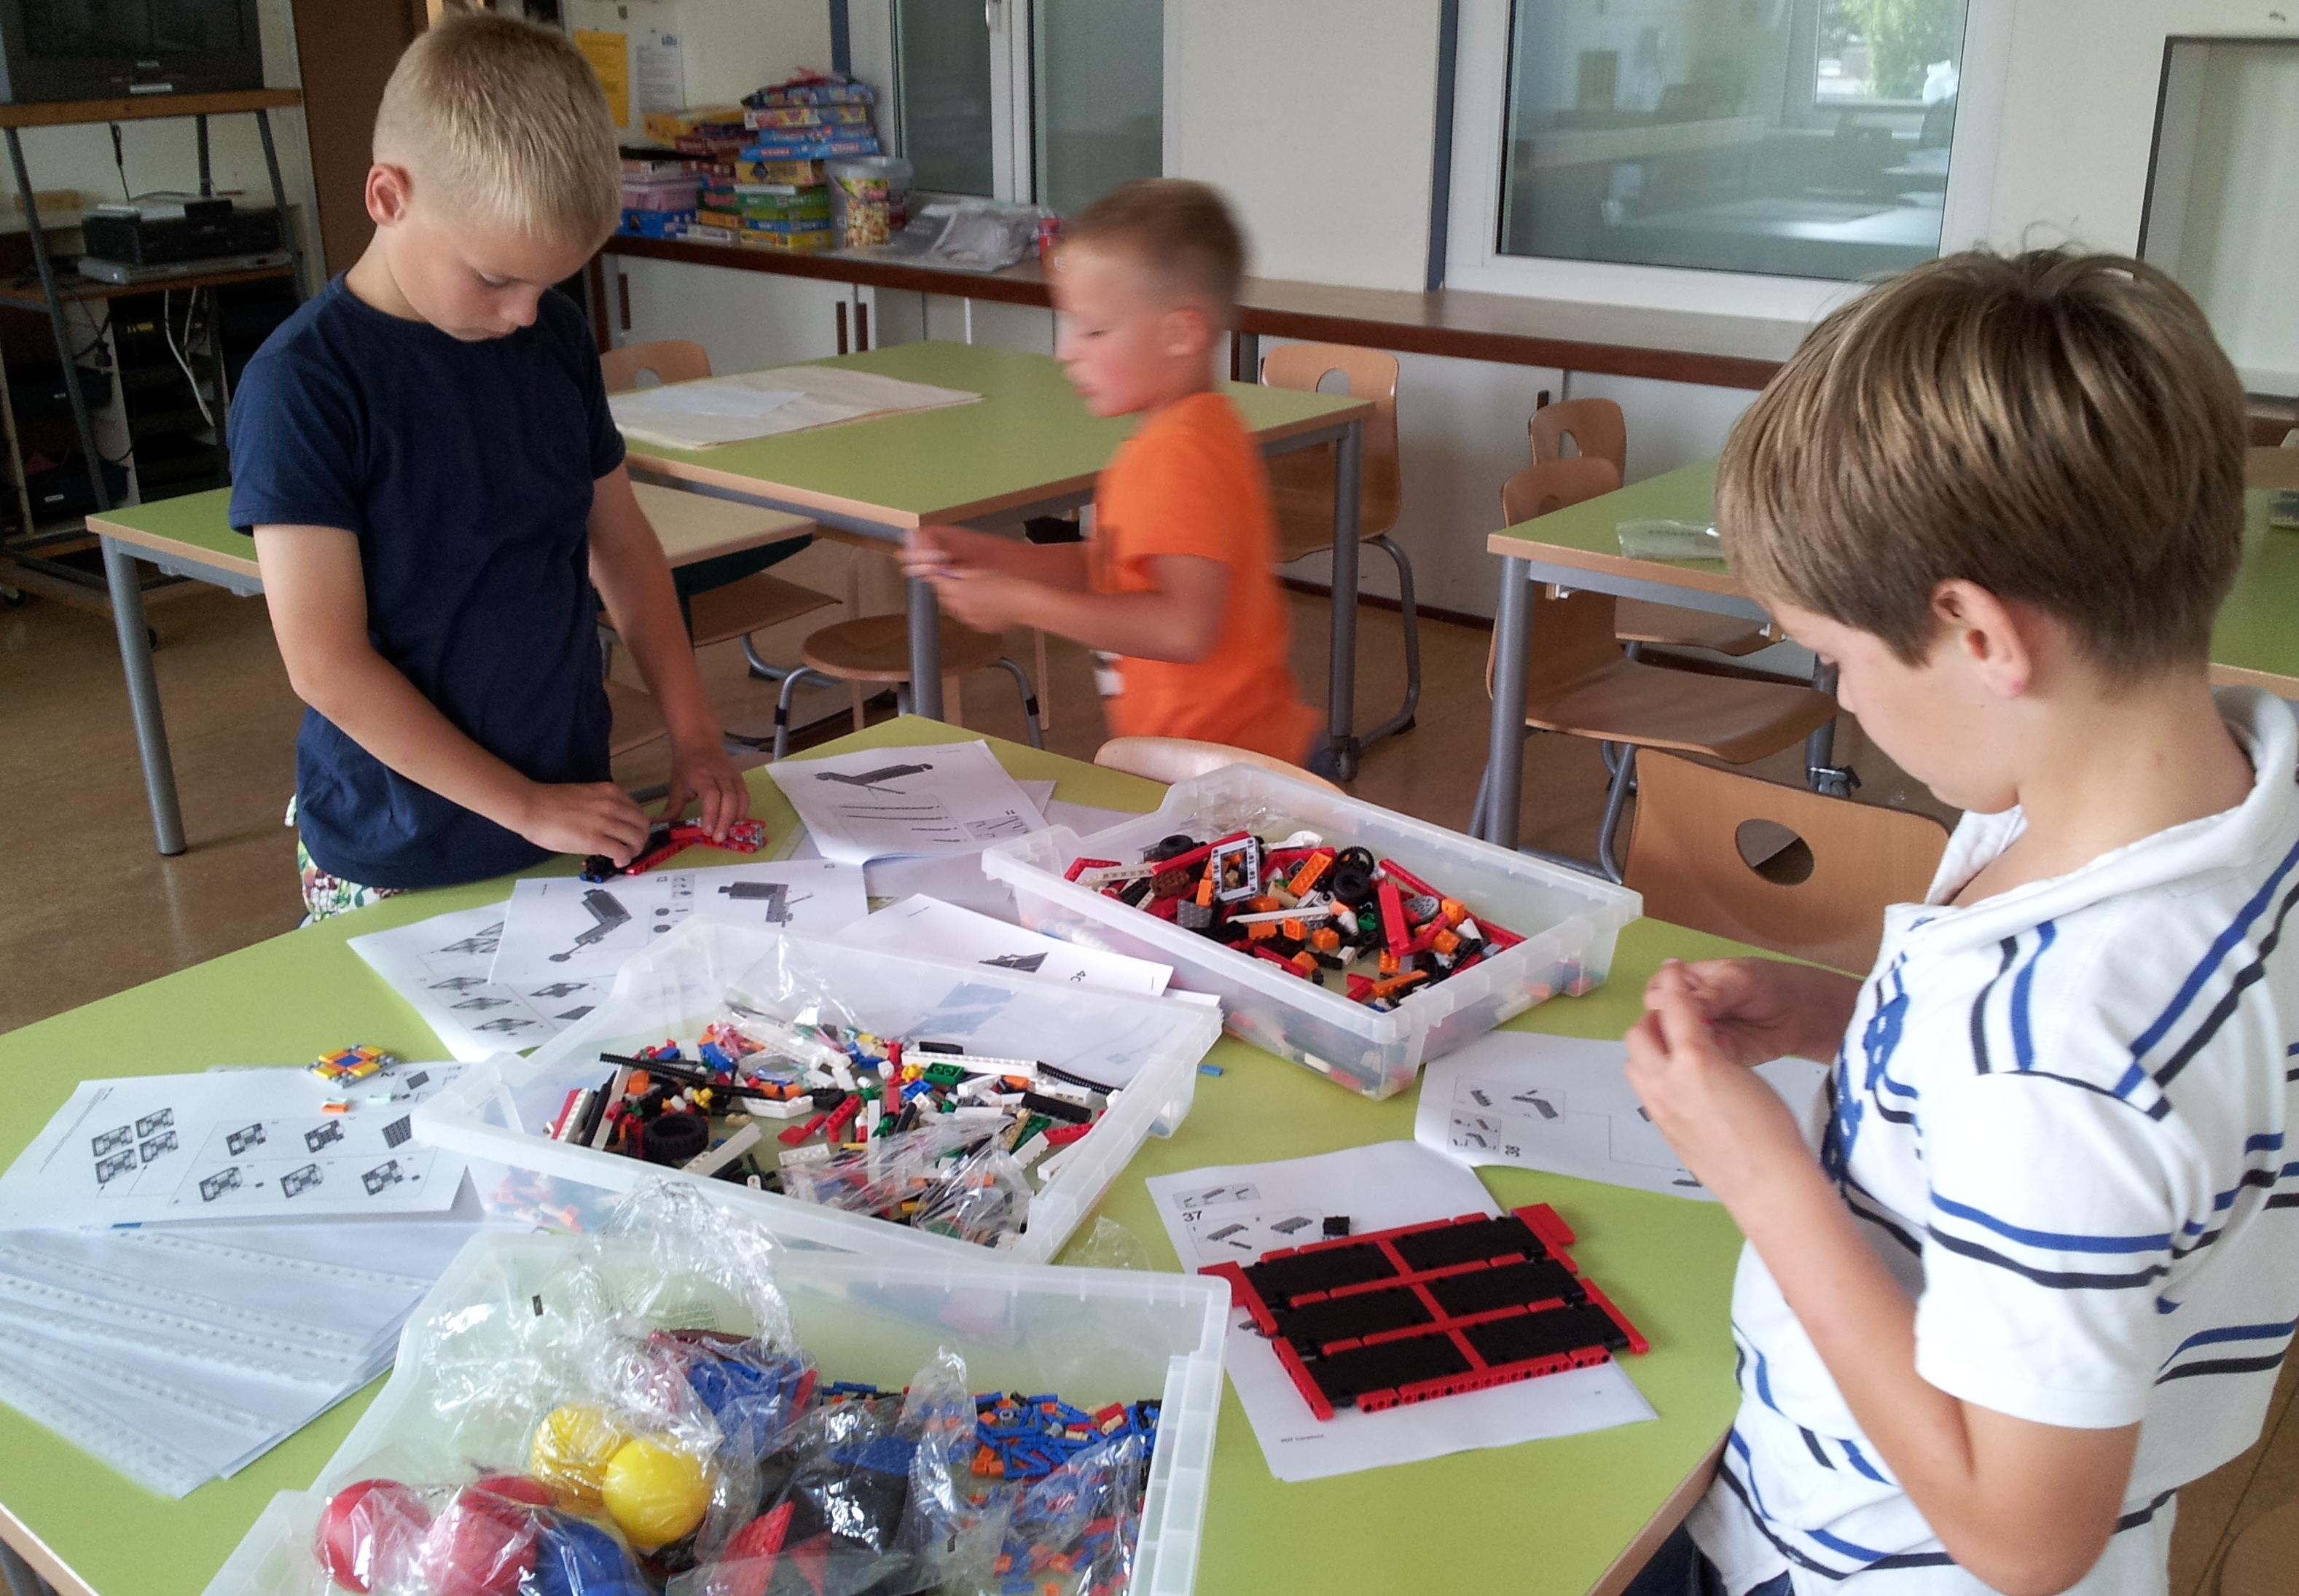 Children from the Netherlands use SolidWorks to Prepare for FLL Robot Competition